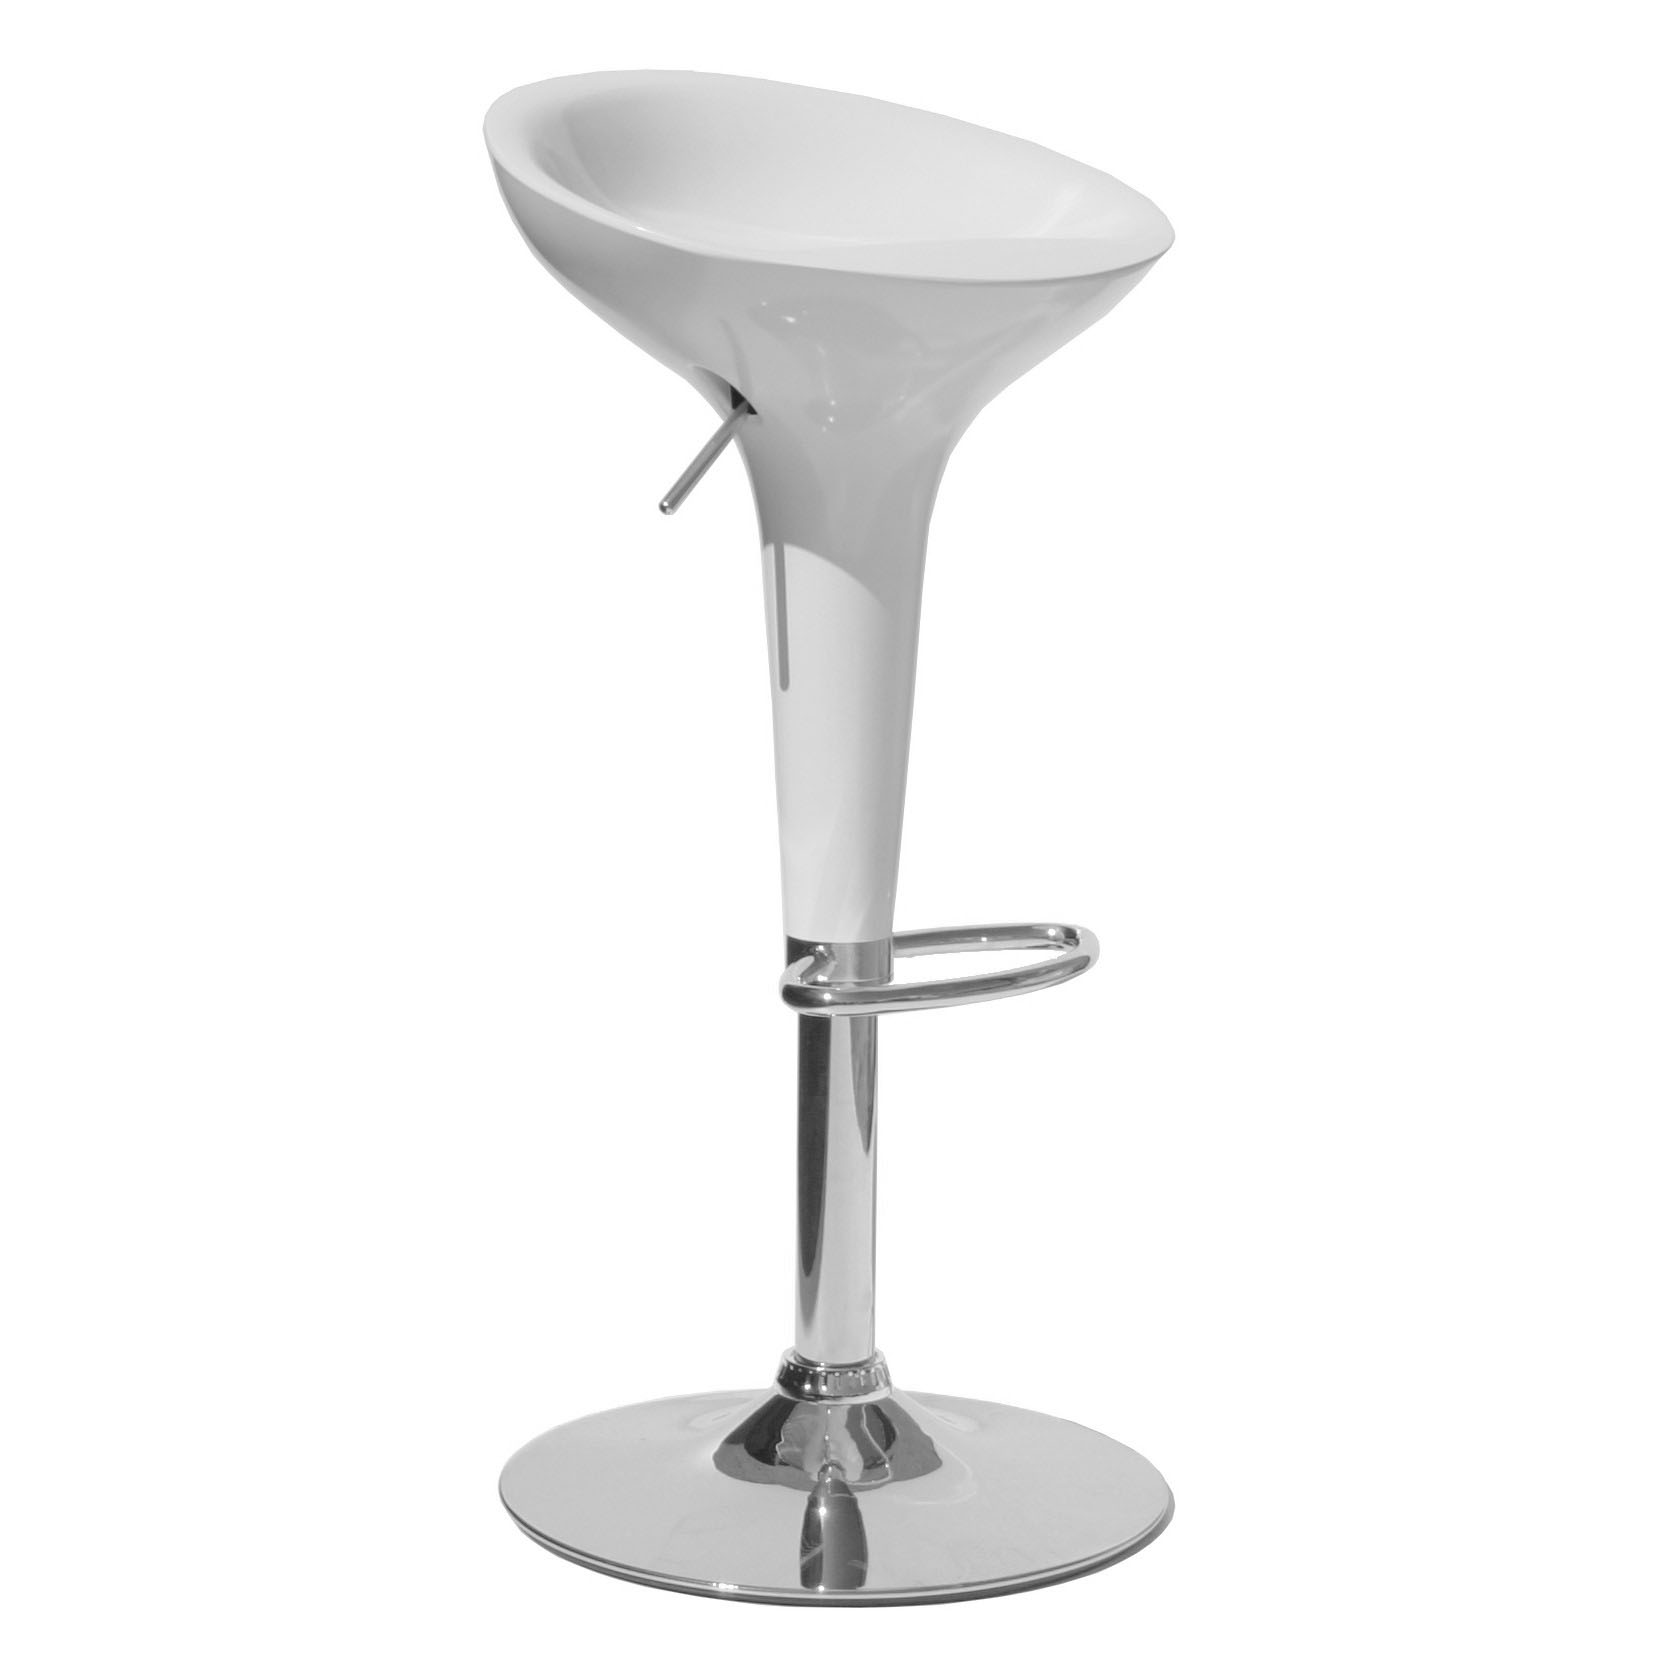 Bamboo Bar Stool - White Product Image